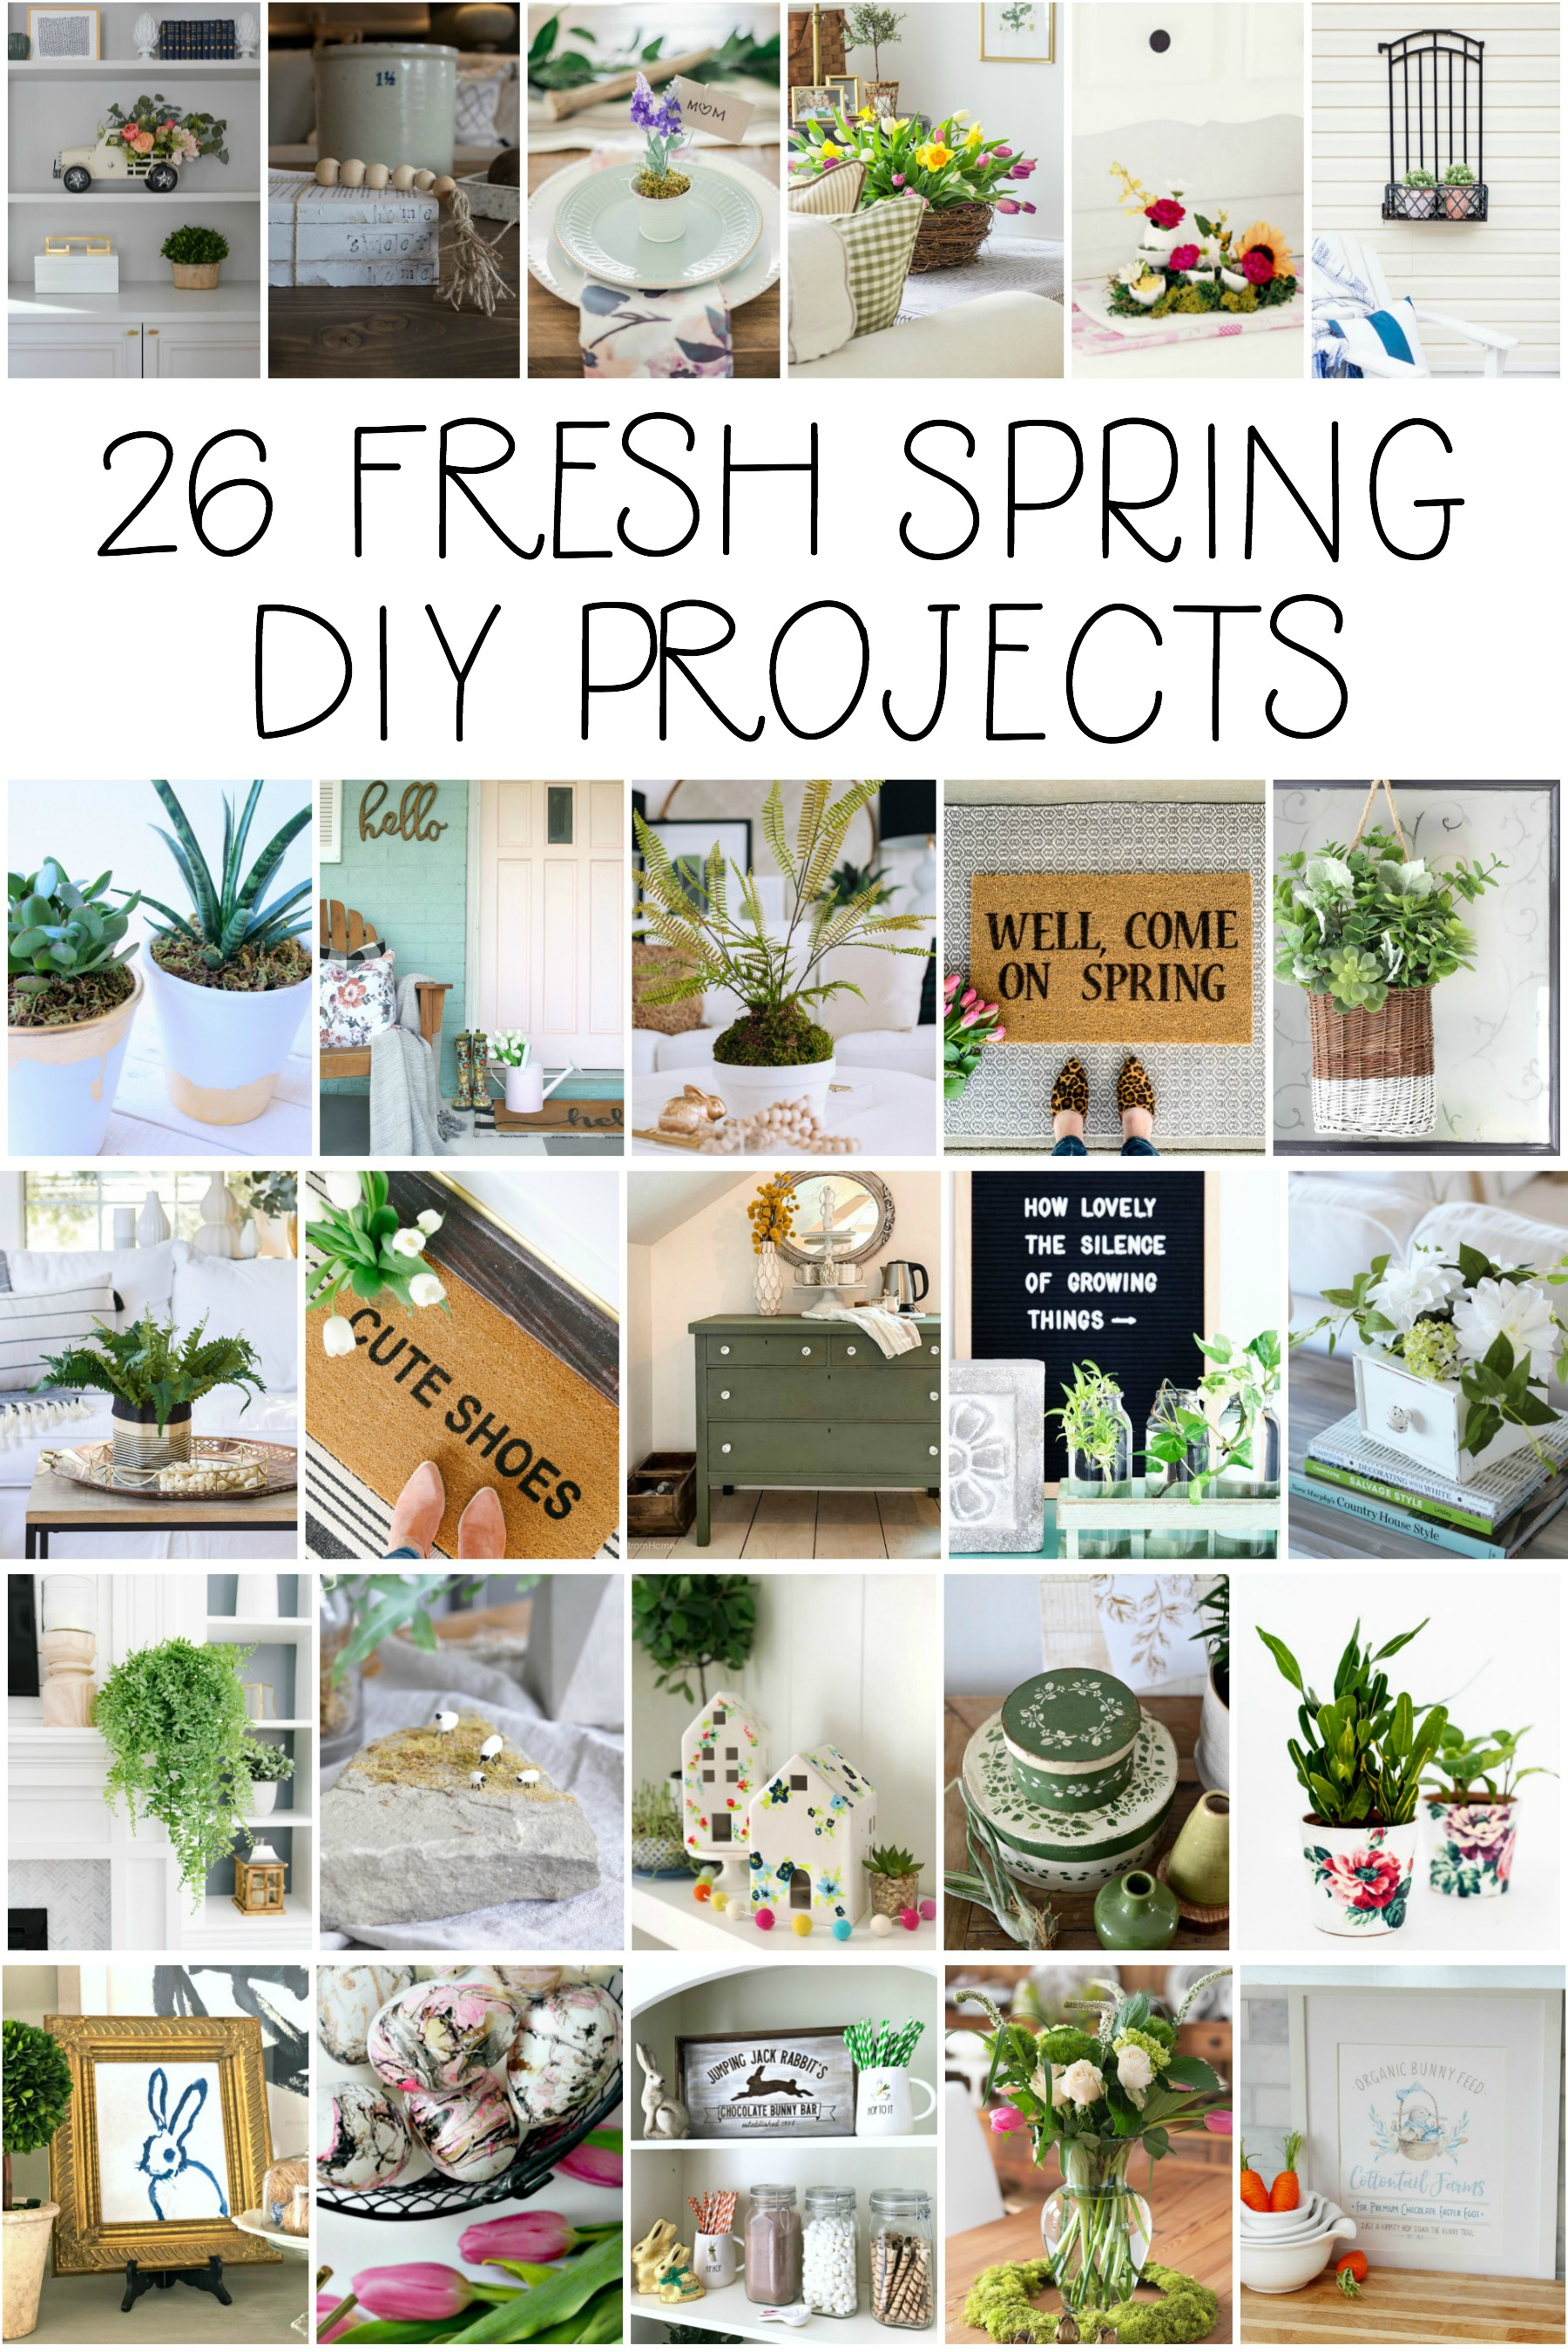 SO CUTE! Check out these 26 new spring diy project ideas! From easy to make front porch mats to indoor spring decor, we've got you covered with lots of spring decor ideas! #homedecor #topspringideas #freshspringideas #springhomedecor